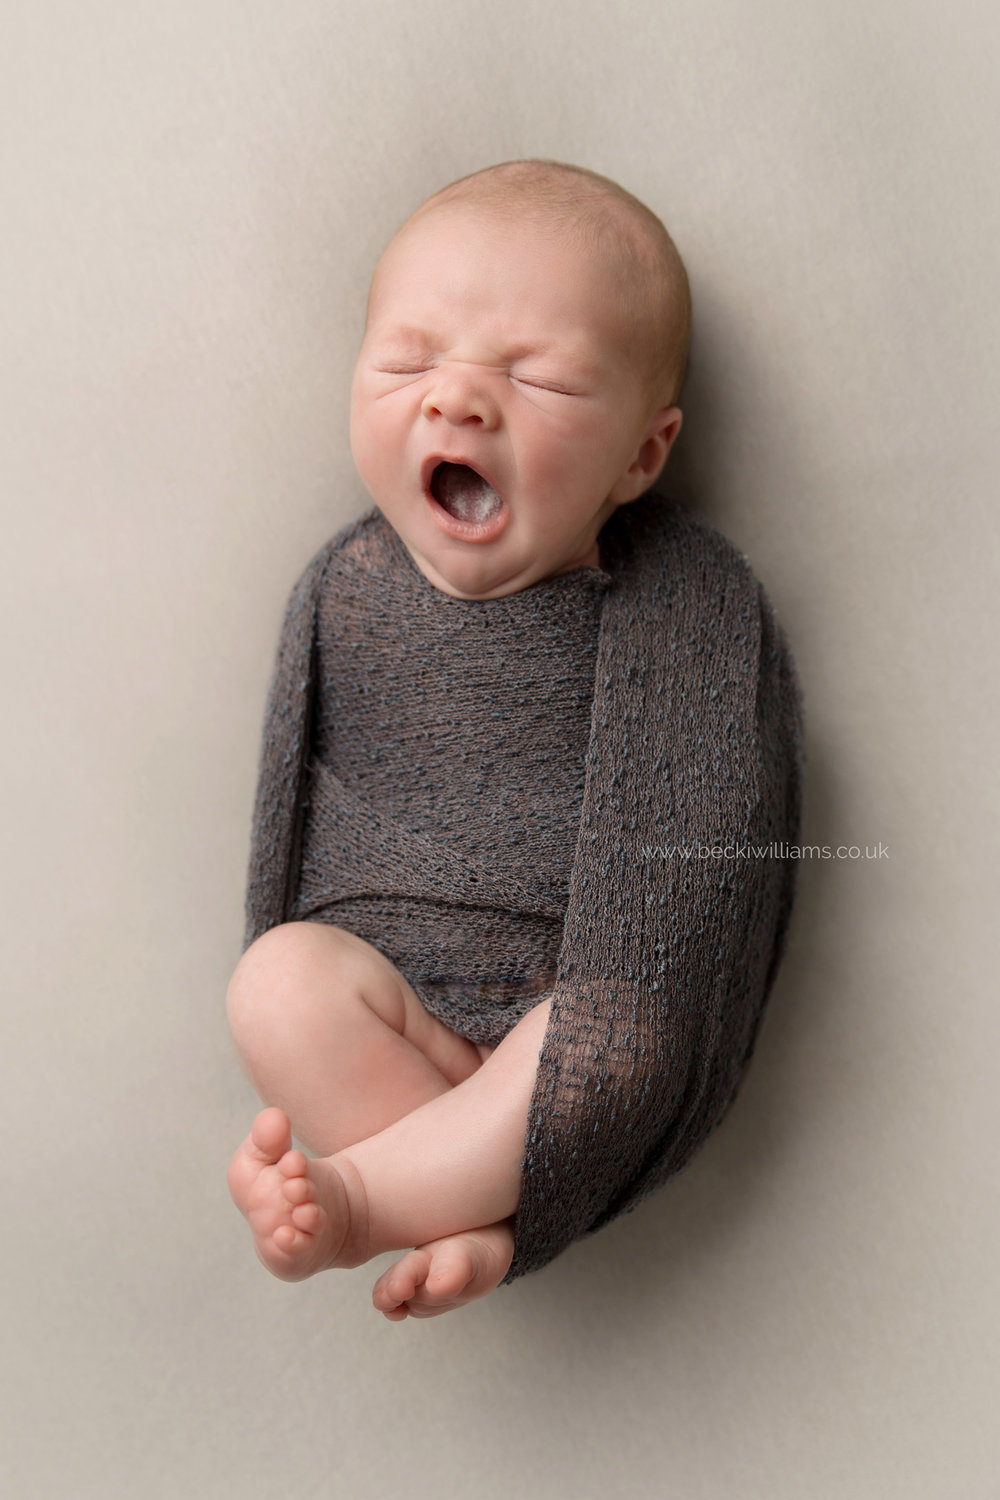 newborn-baby-photo-shoot-hemel-hempstead-yawning.jpg